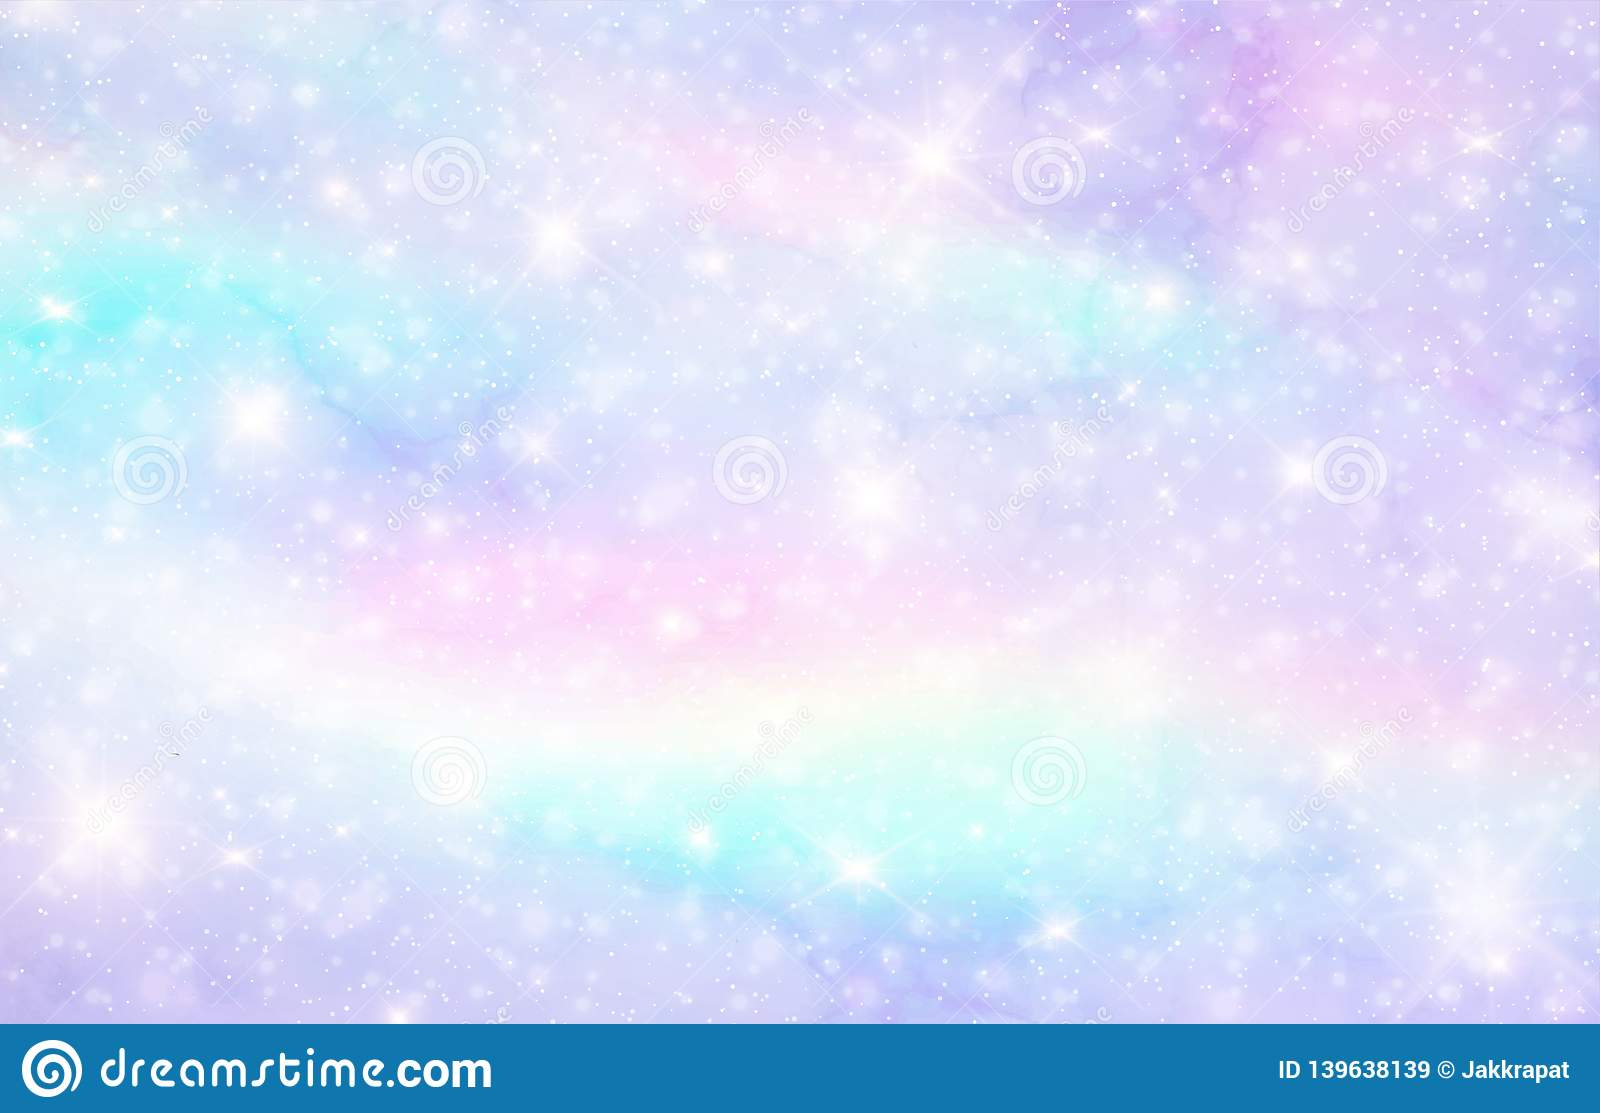 Vector Illustration Of Galaxy Fantasy Background And ...